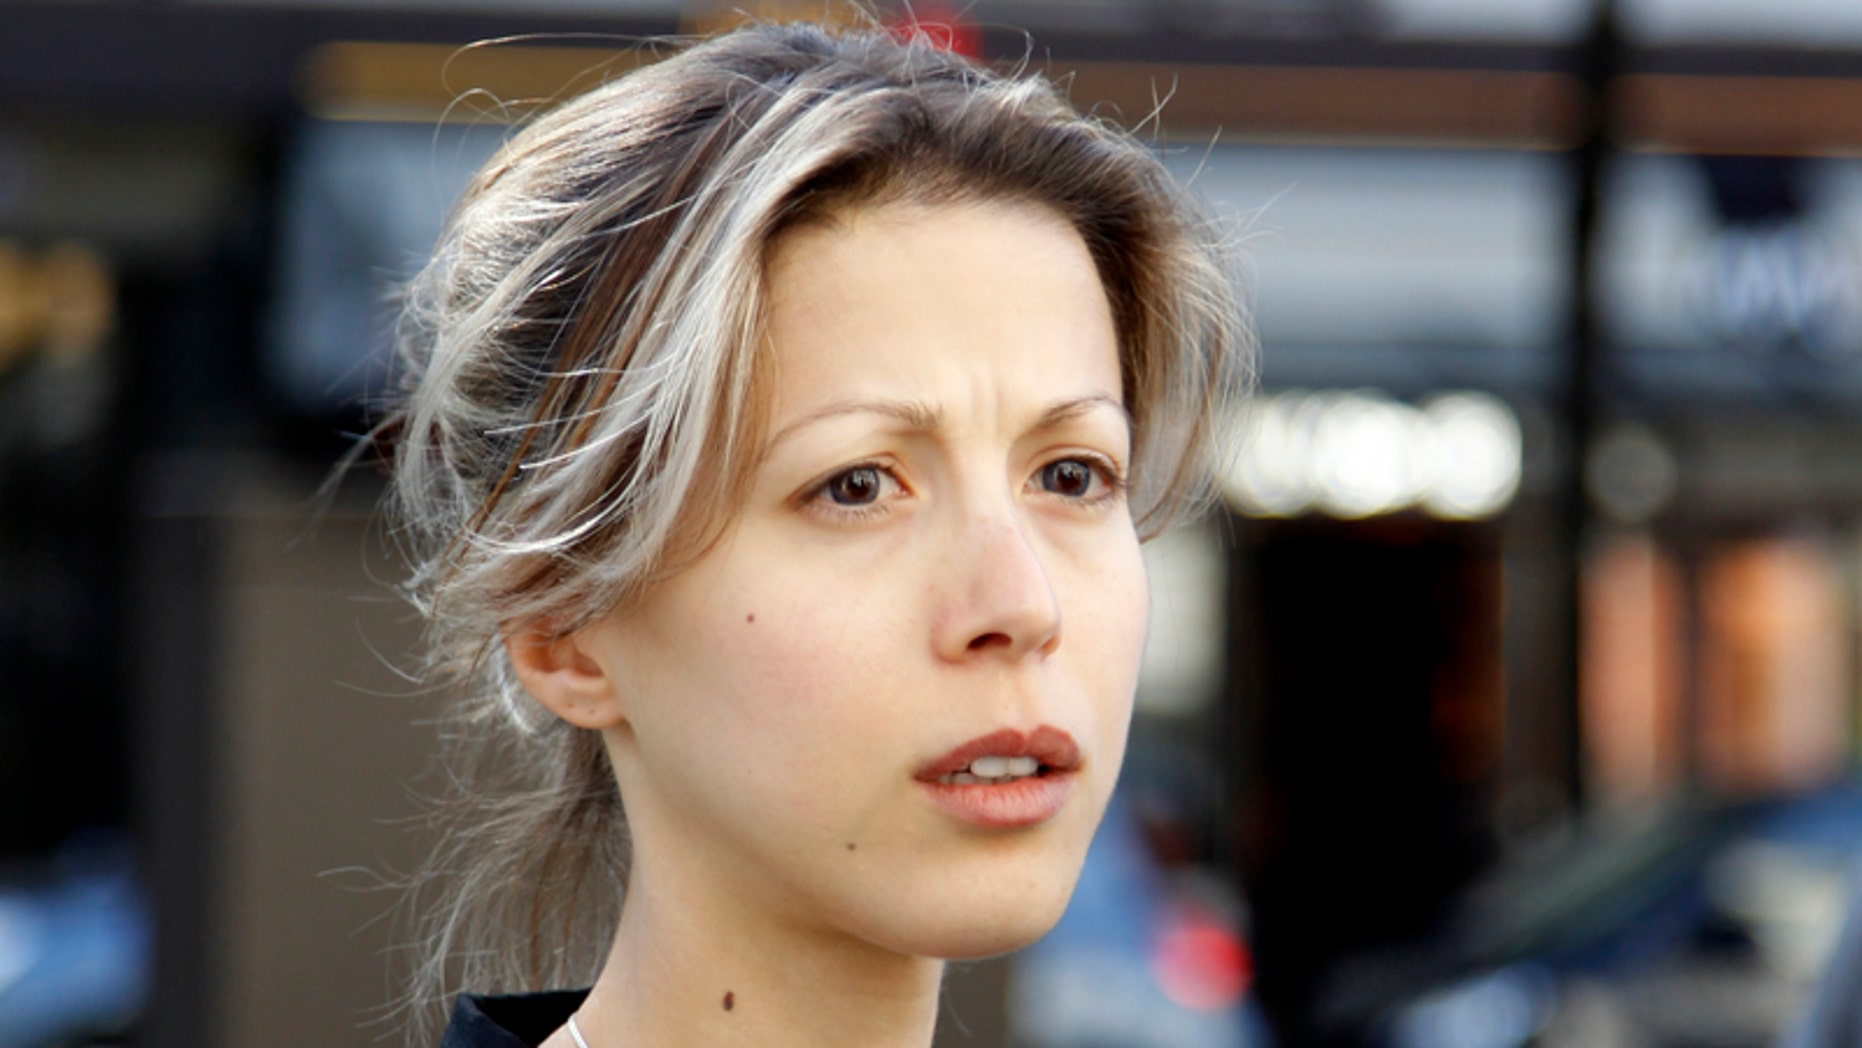 May 17, 2011: French writer Tristane Banon leaves the office of her lawyer David Koubbi in Paris.